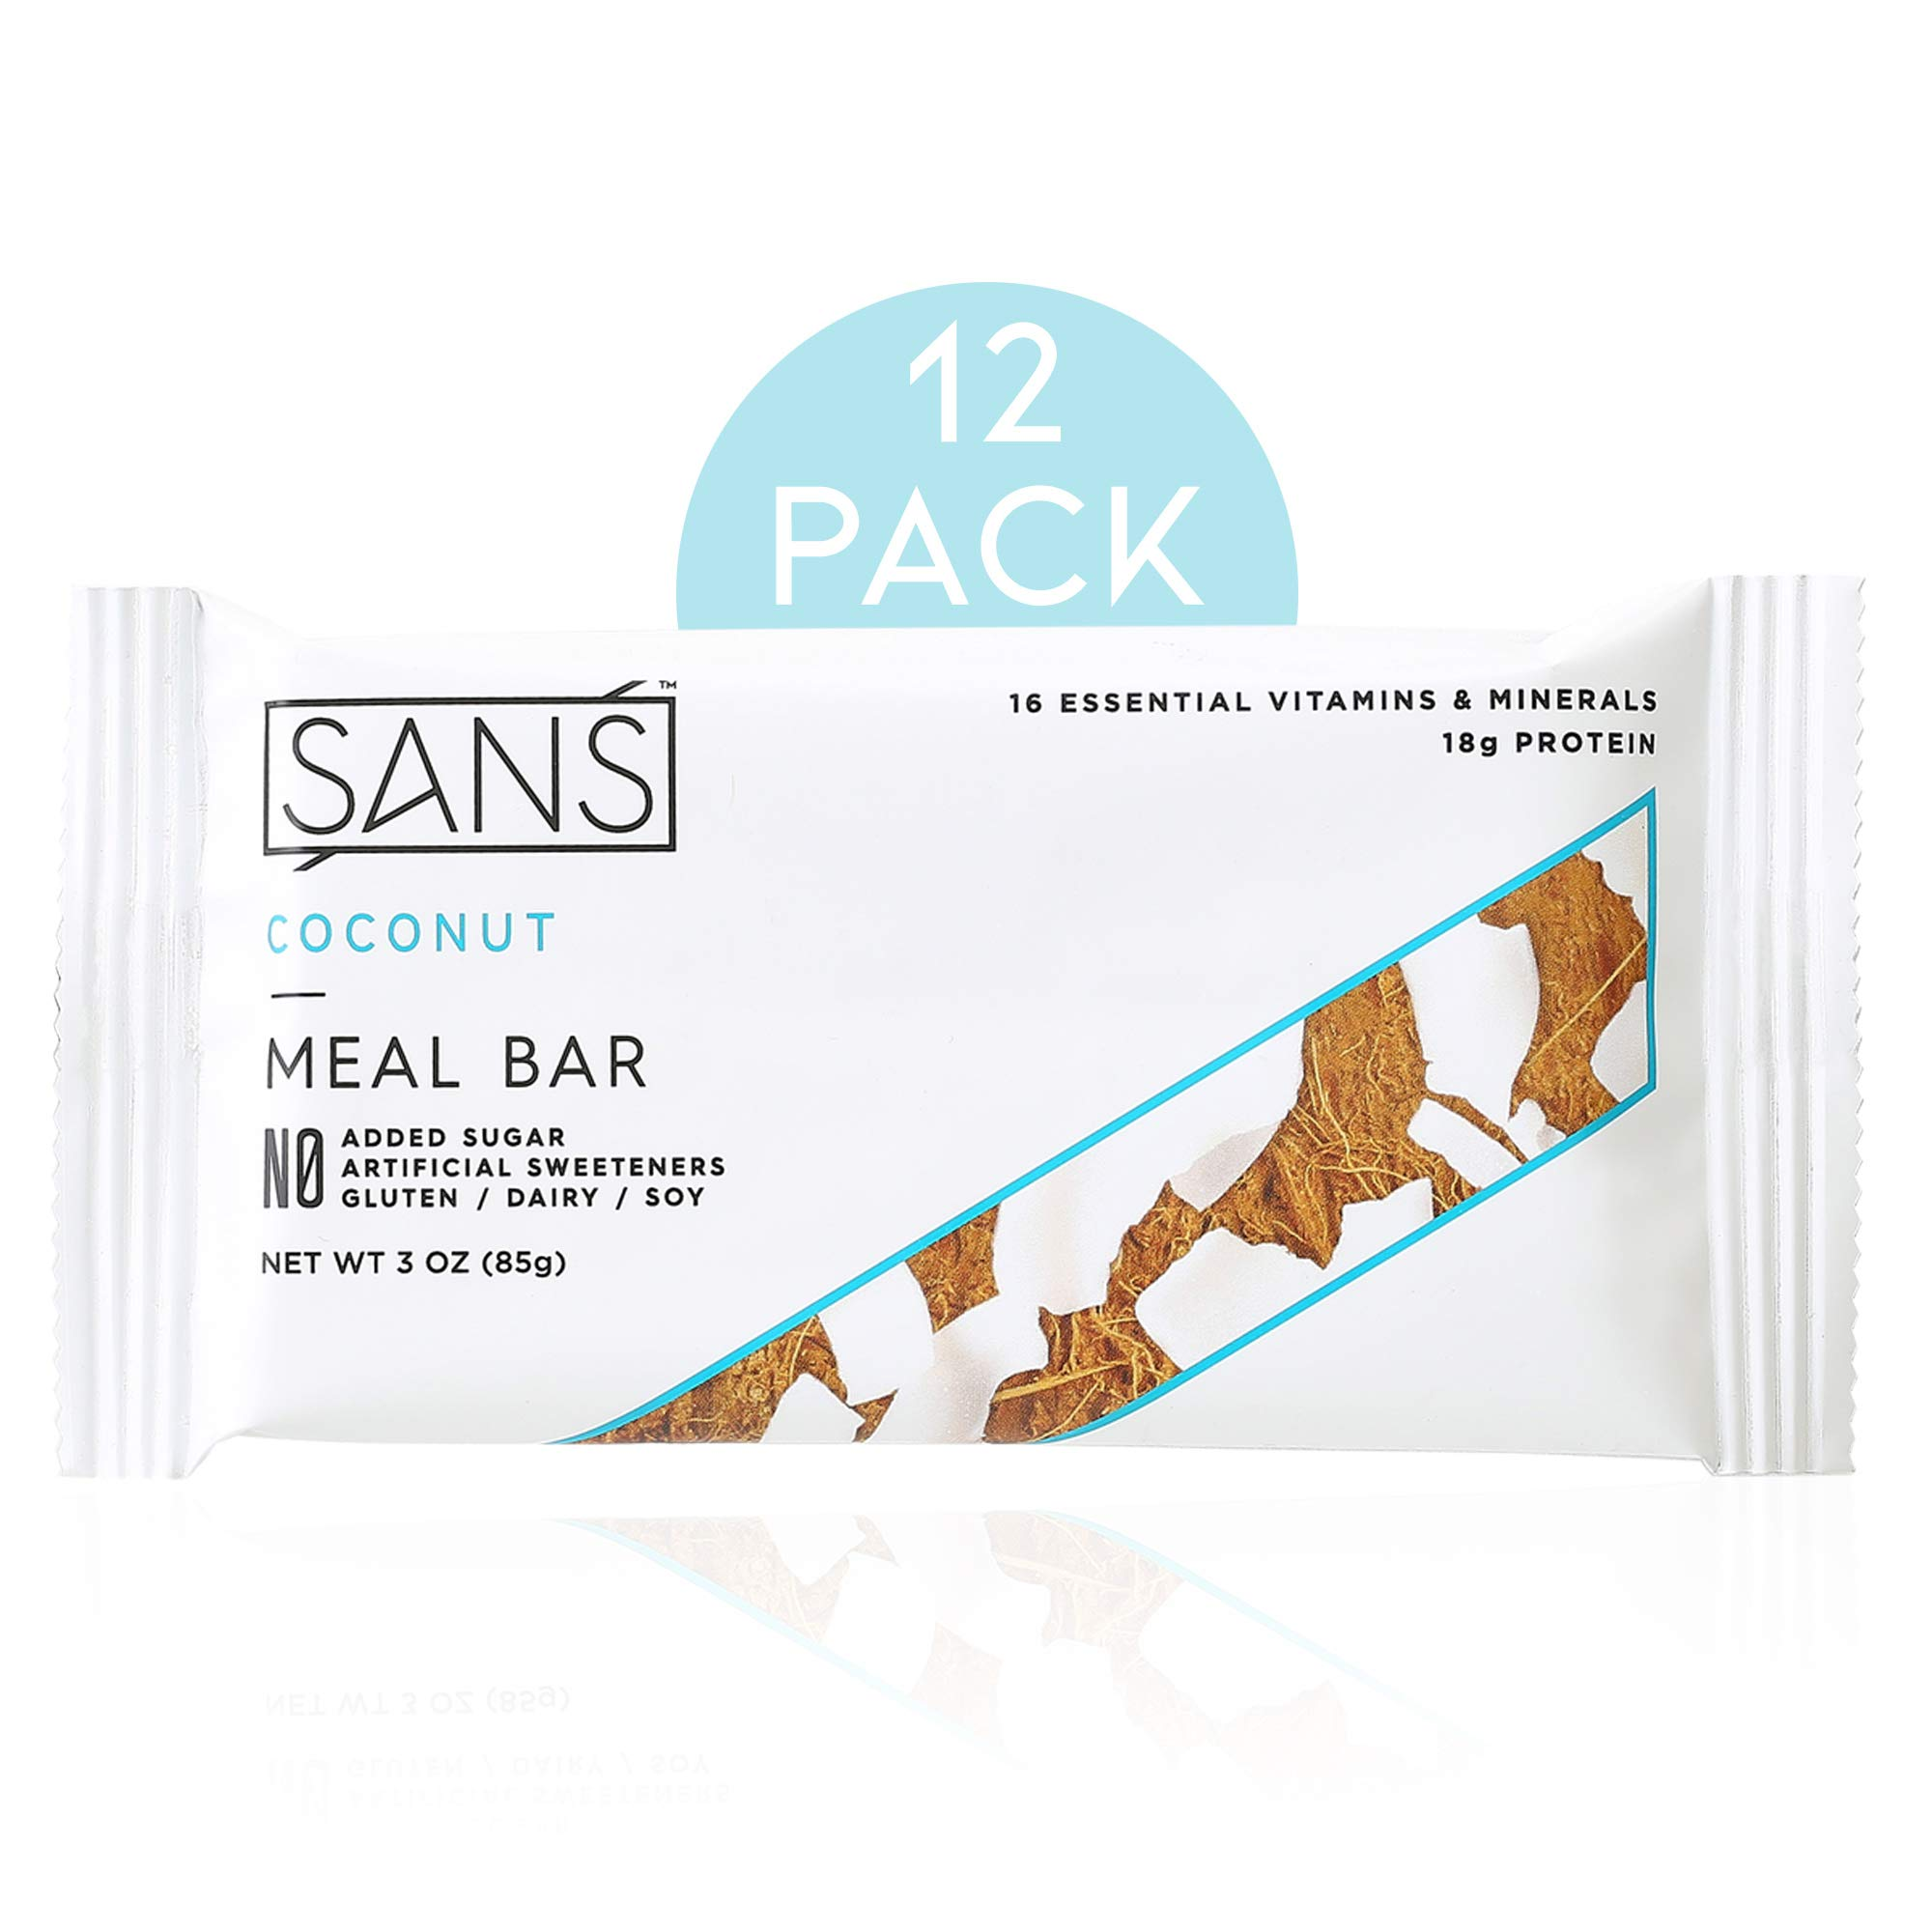 SANS Coconut Meal Replacement Protein Bar | All-Natural Nutrition Bar With No Added Sugar | Dairy-Free, Soy-Free, and Gluten-Free | 16 Essential Vitamins and Minerals | (12 Pack) by SANS